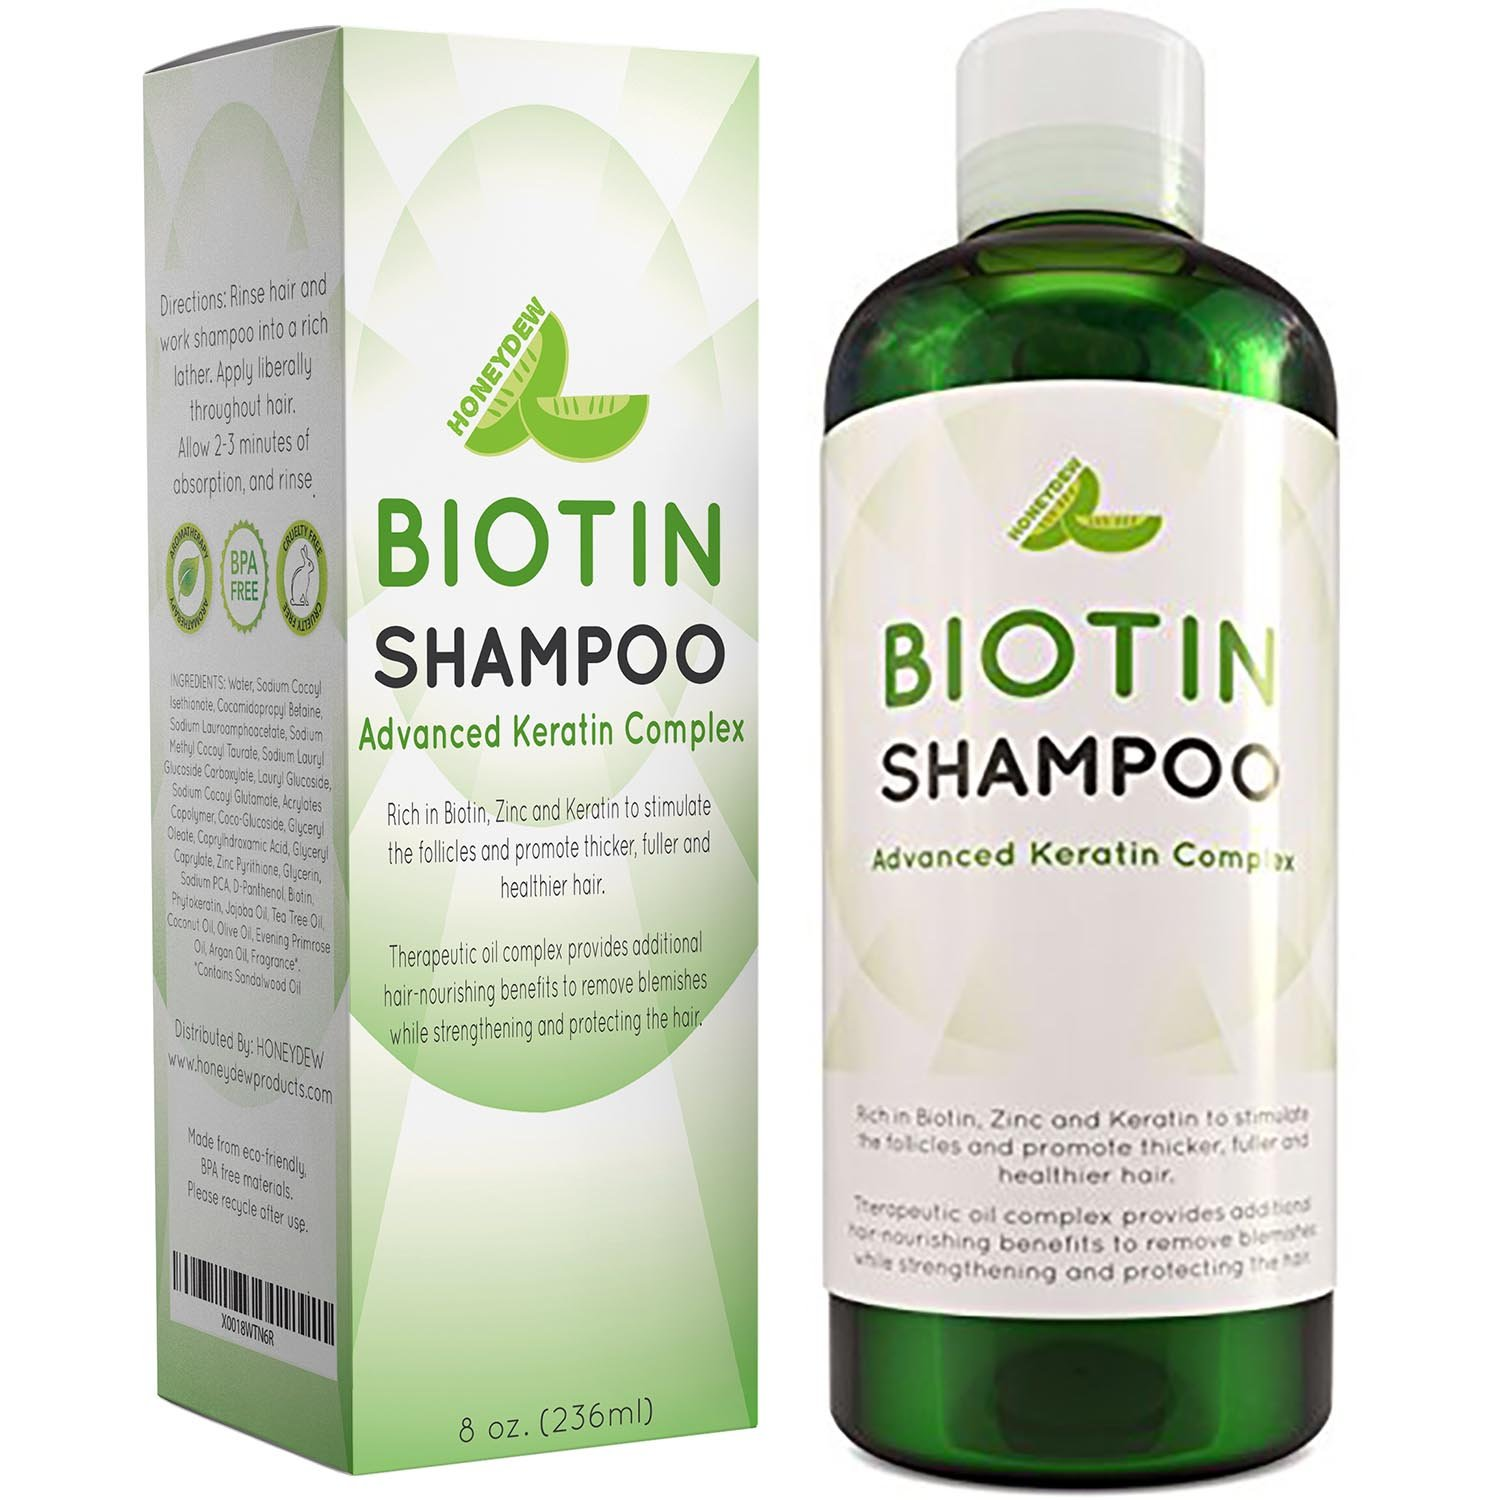 Hair Loss Shampoo for Men and Women - DHT Blocker - Biotin for Hair Growth and Regrowth Treatment - Thicker Fuller Hair Revitalizing Shampoo - Improve Circulation Scalp - Dandruff Shampoo Sulfate Free by Honeydew